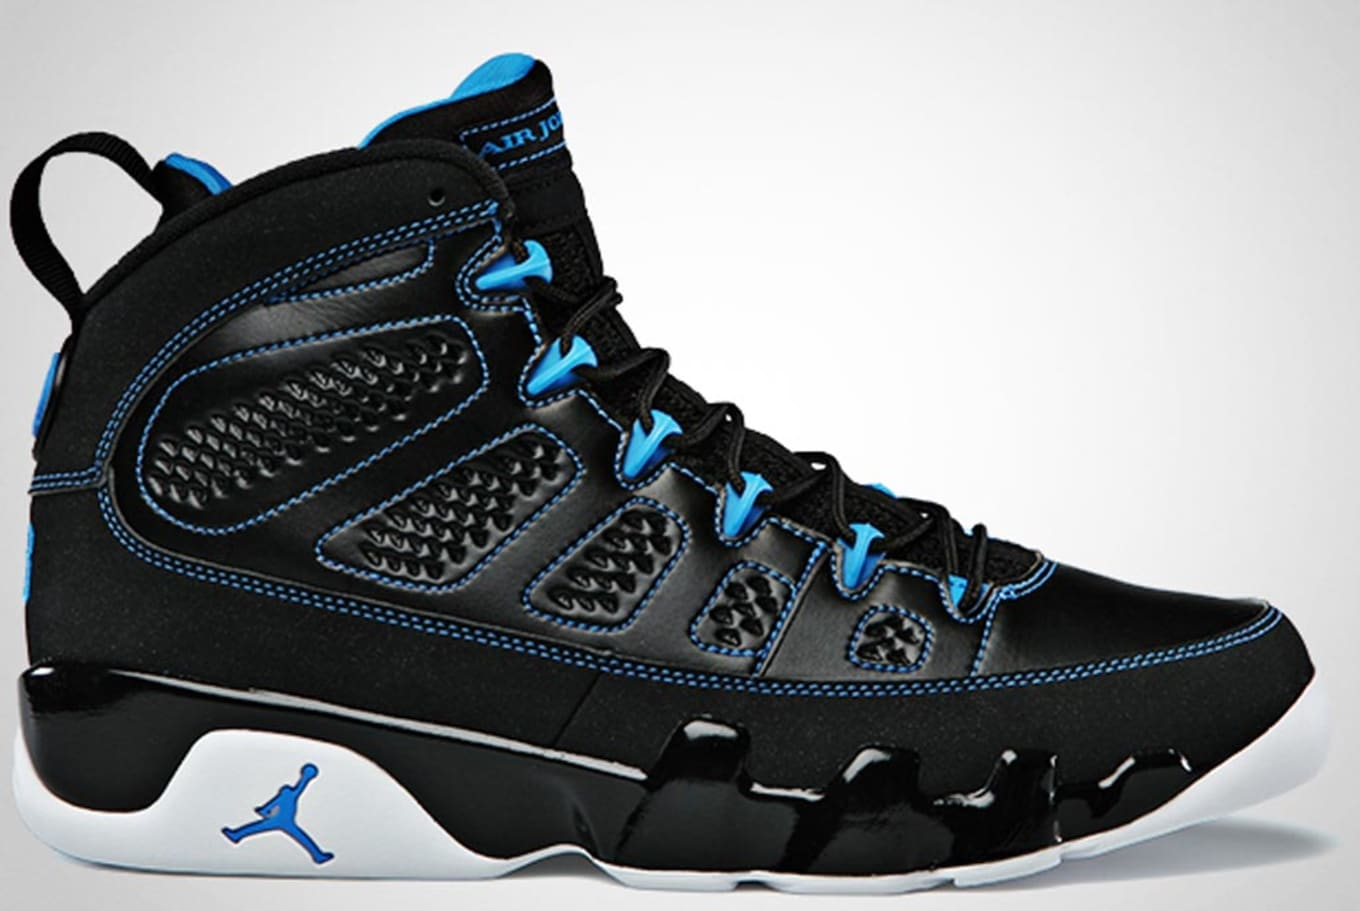 52135a53bf6 Air Jordan 9: The Definitive Guide To Colorways | Sole Collector